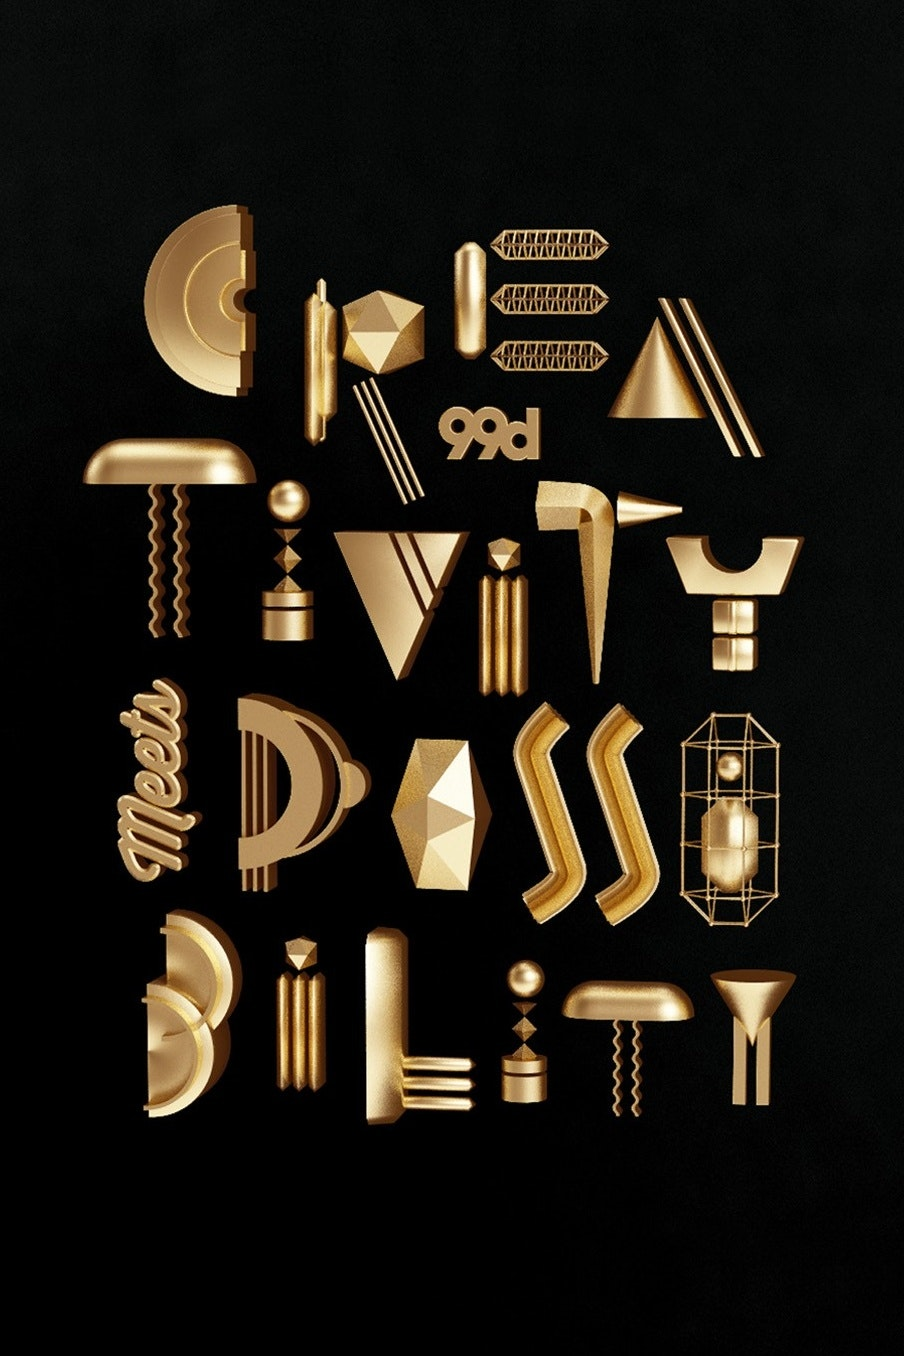 A creative and fun metallic poster